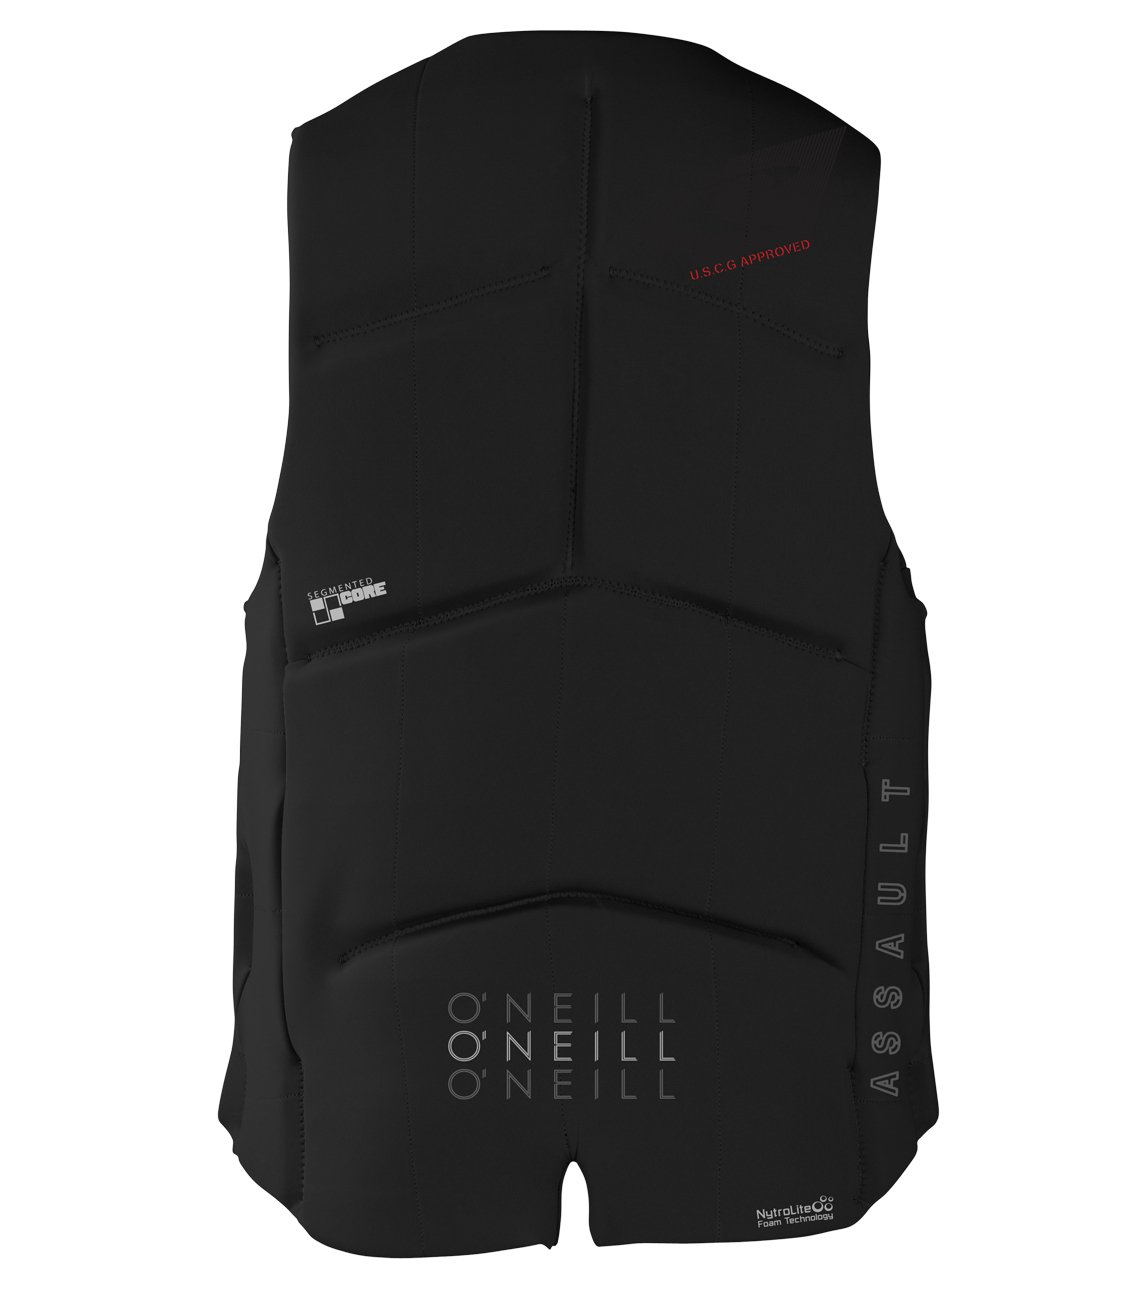 O'Neill Wetsuits  Men's Assault USCG Life Vest,Black,Medium by O'Neill Wetsuits (Image #2)